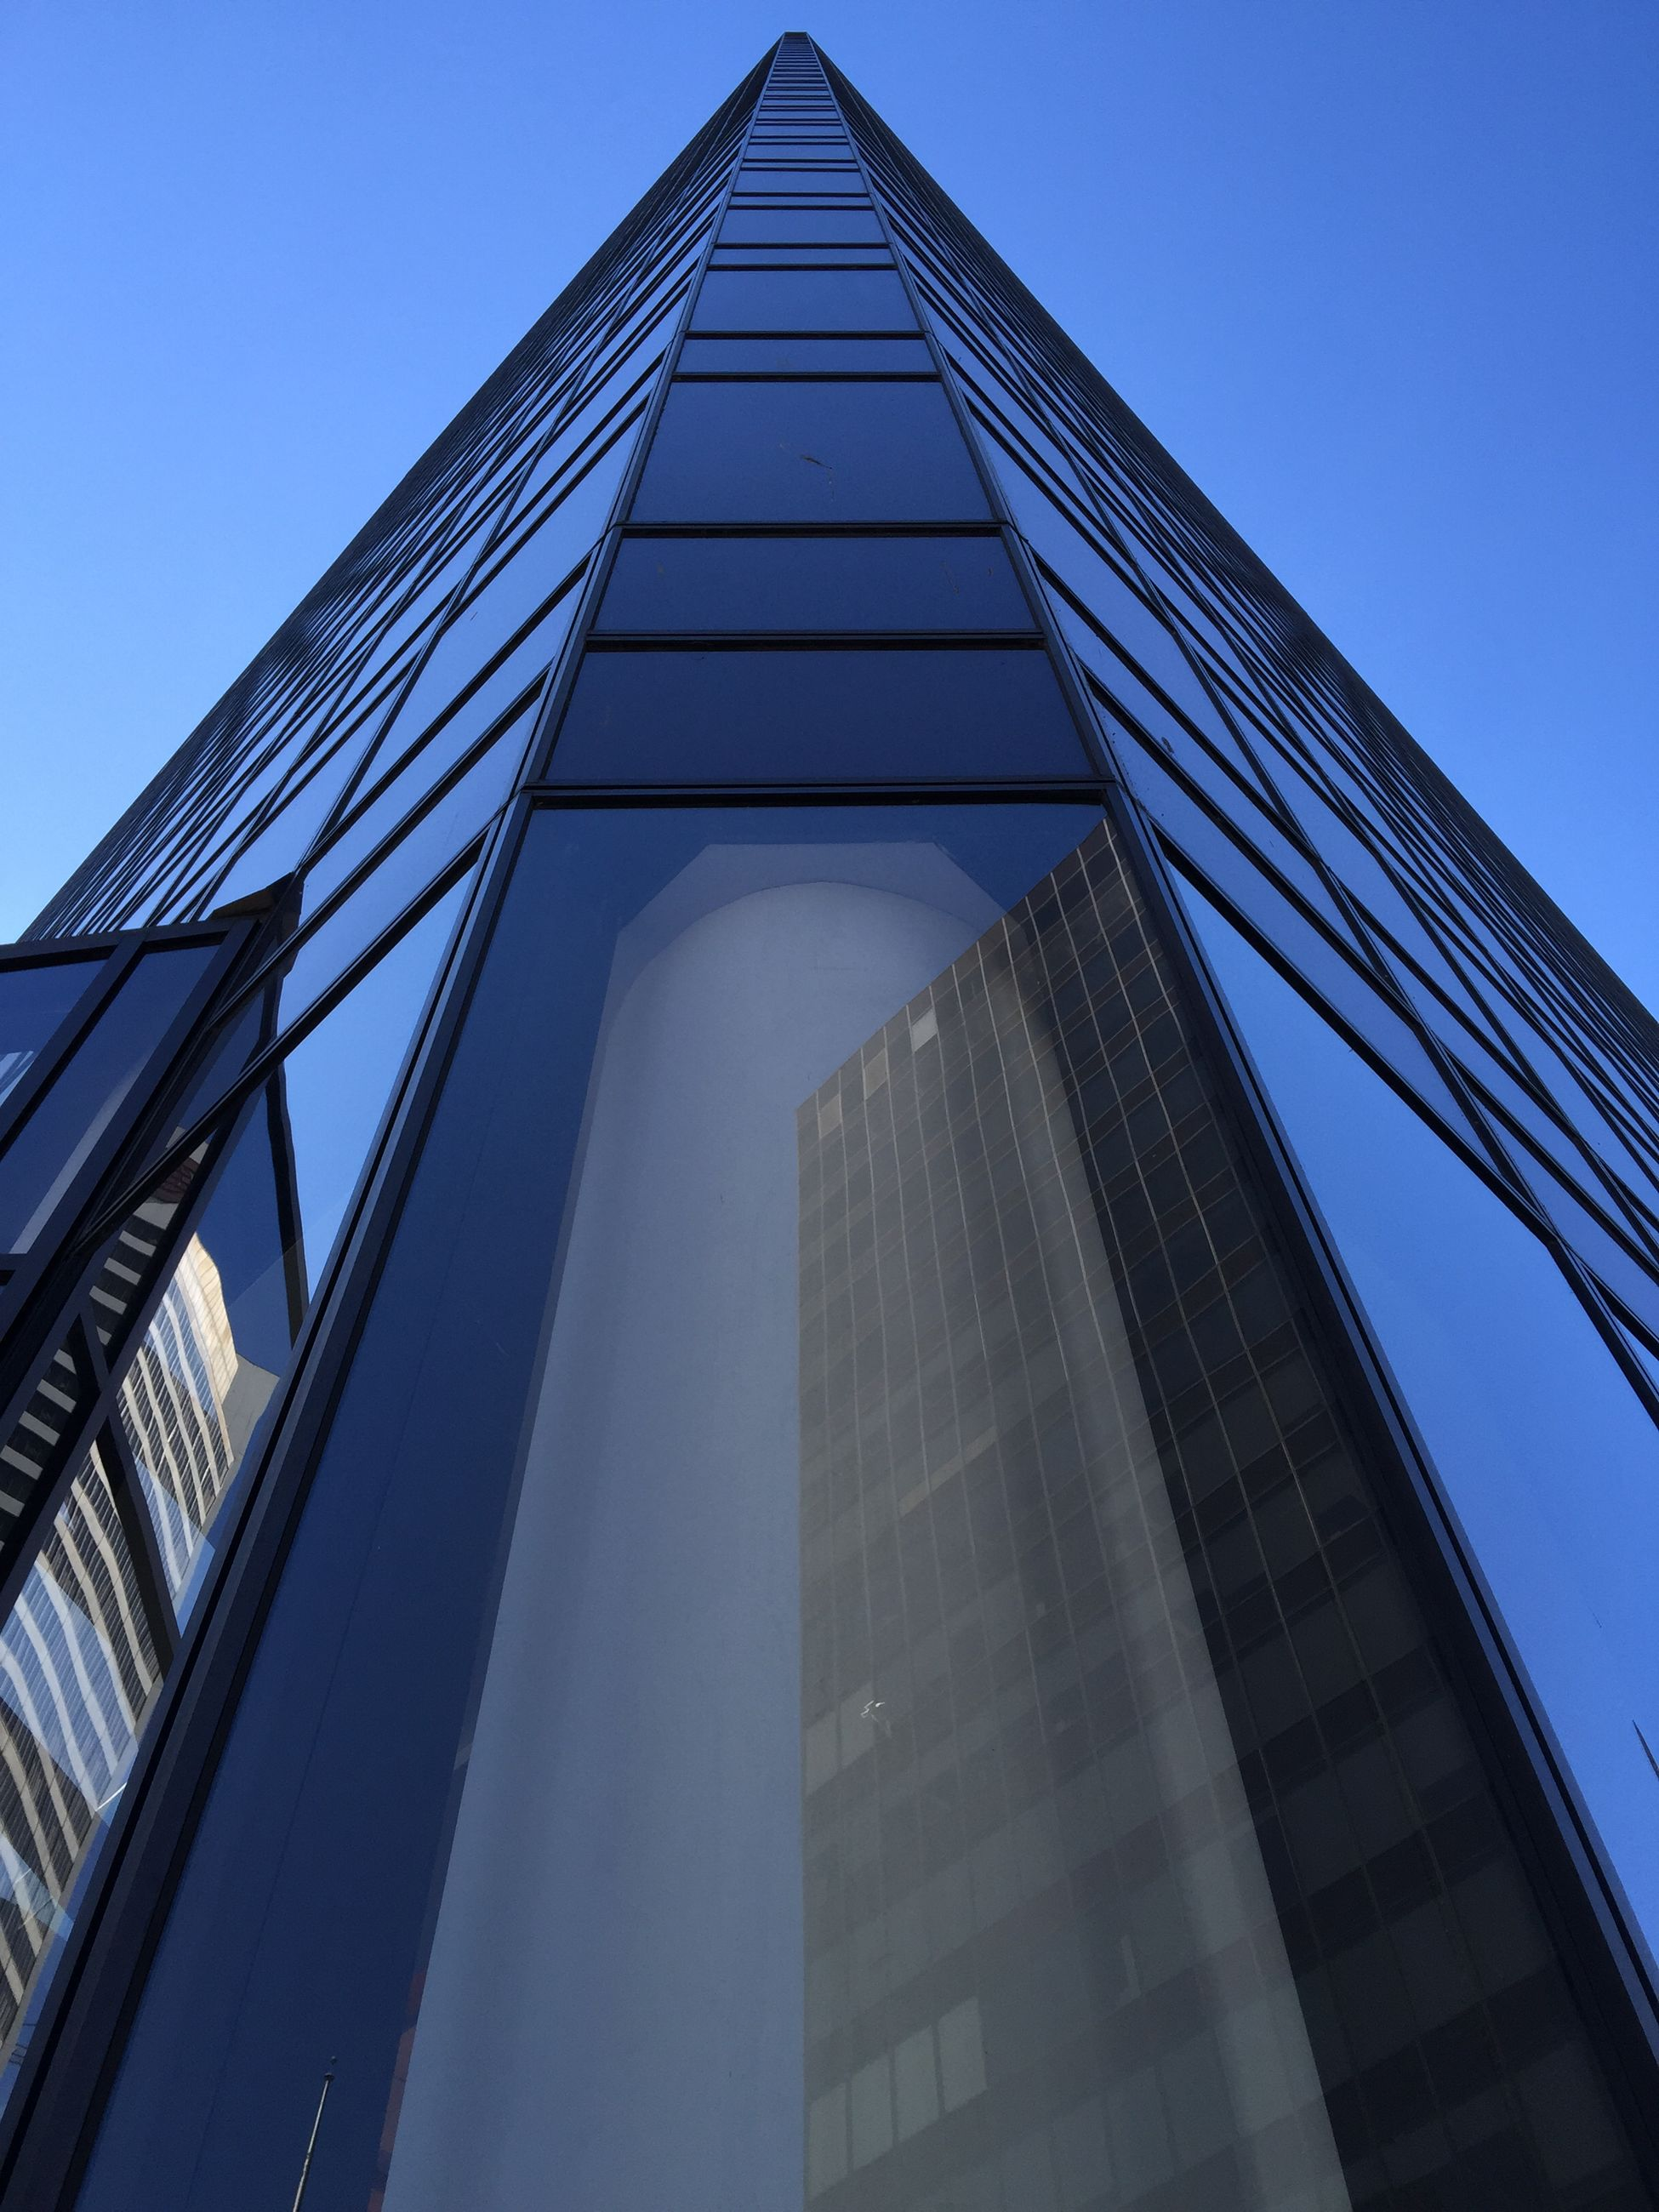 architecture, built structure, low angle view, building exterior, clear sky, blue, modern, reflection, office building, glass - material, building, city, tall - high, tower, skyscraper, day, sky, outdoors, no people, window